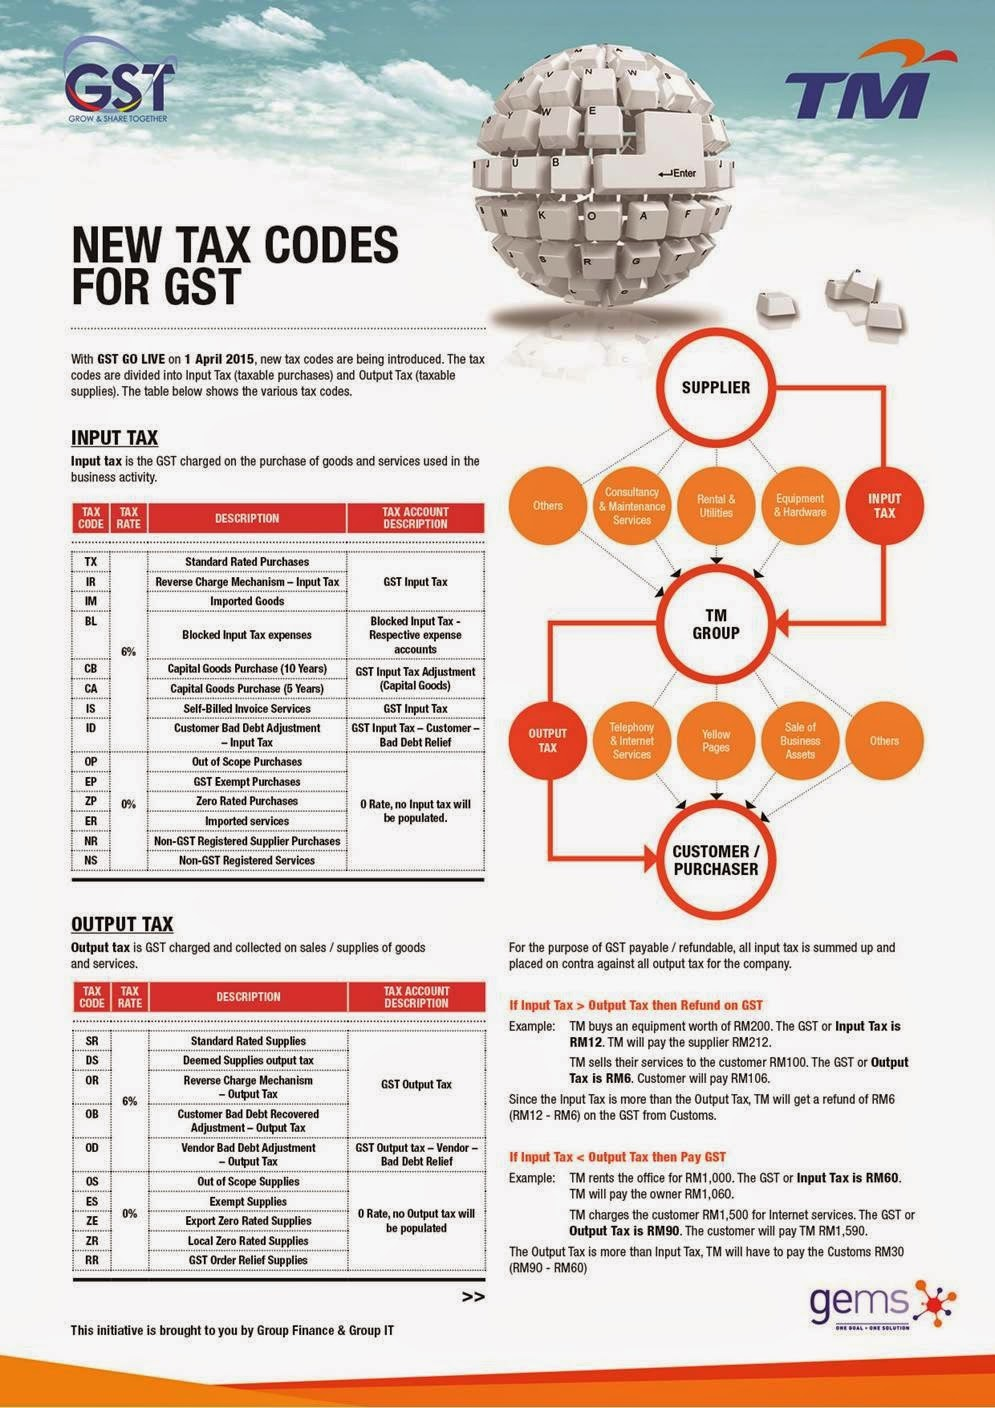 TM's Readiness Program : New Tax Codes for Goods & Services Tax (GST) & Project Updates